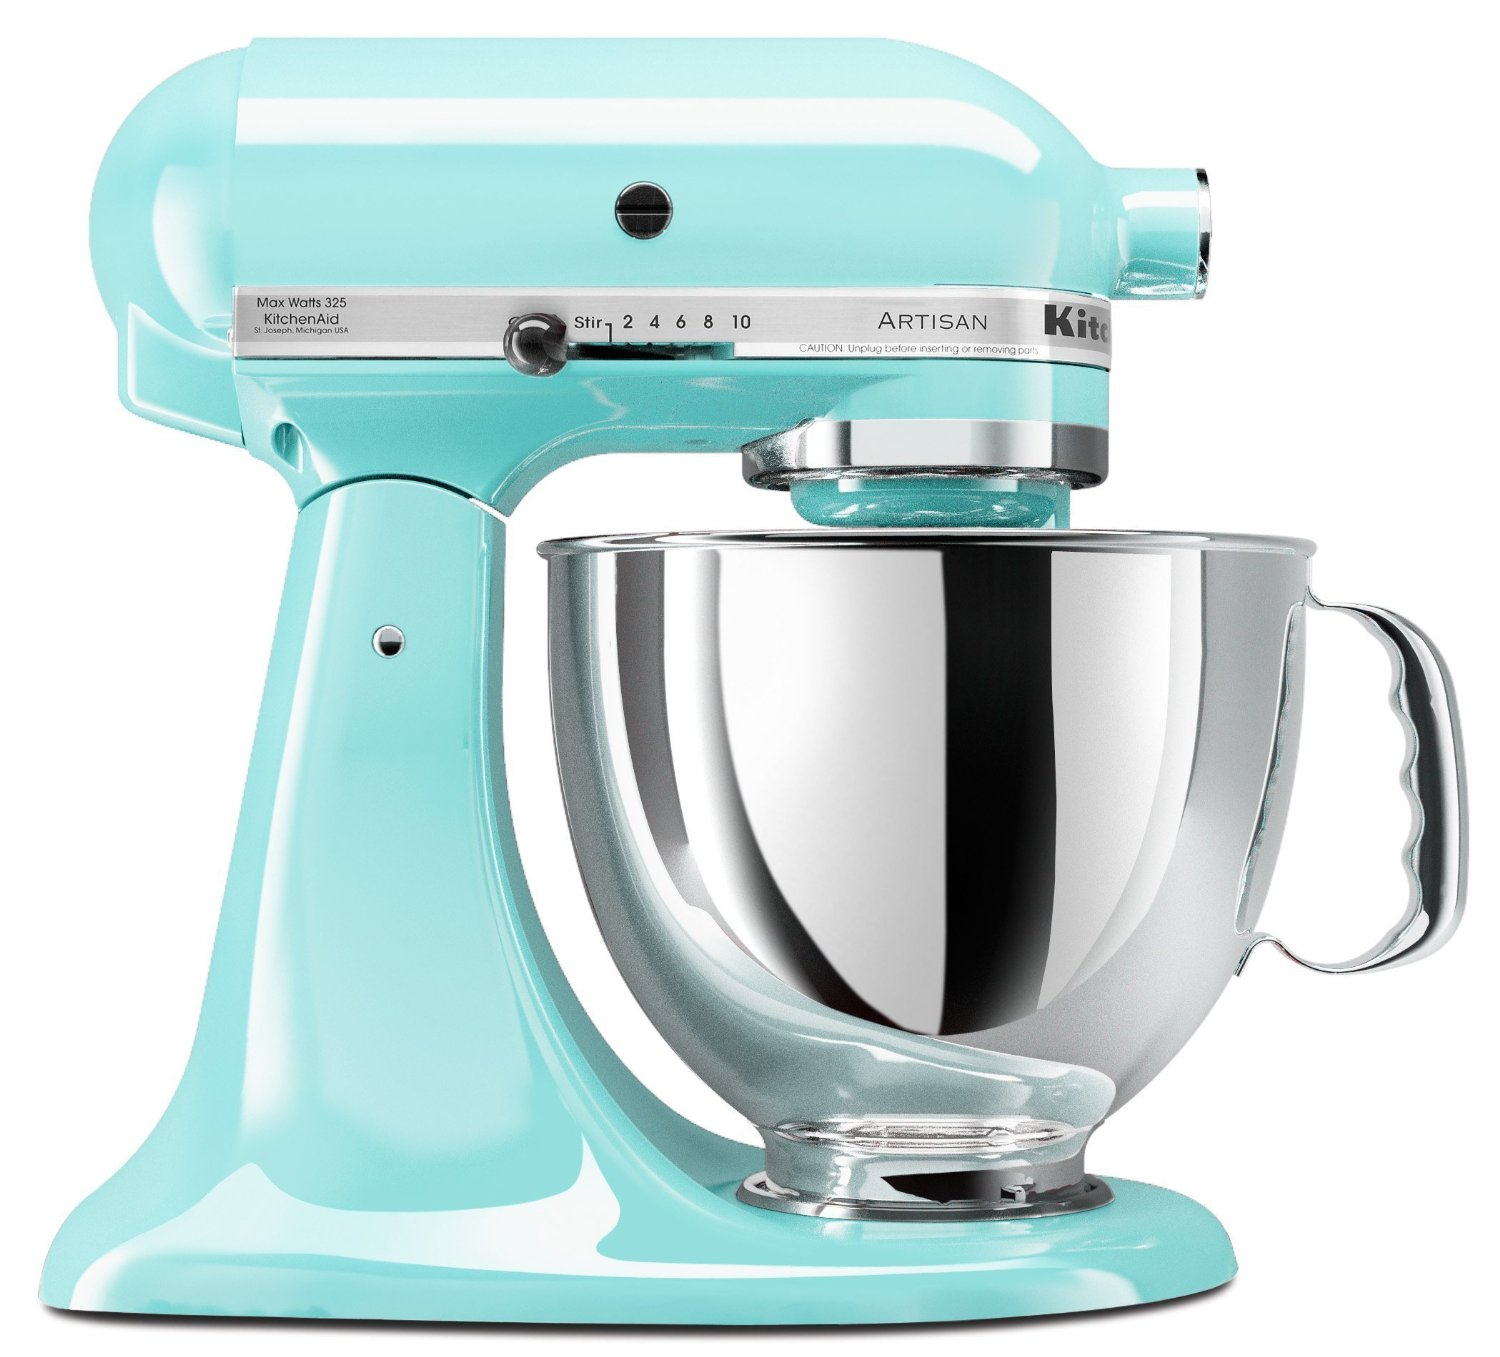 KitchenAid Artisan Stand Mixer - Ice Blue - The Great American Cake on kitchenaid ice rose, miele ice blue, benjamin moore ice blue, kitchenaid ice maker, kitchenaid electric blue, kitchenaid indigo blue, kitchenaid light blue, kitchenaid stand mixer blue, kitchenaid sky blue, kitchenaid artisan mixer ice, kitchenaid azure blue, kitchenaid crystal blue,